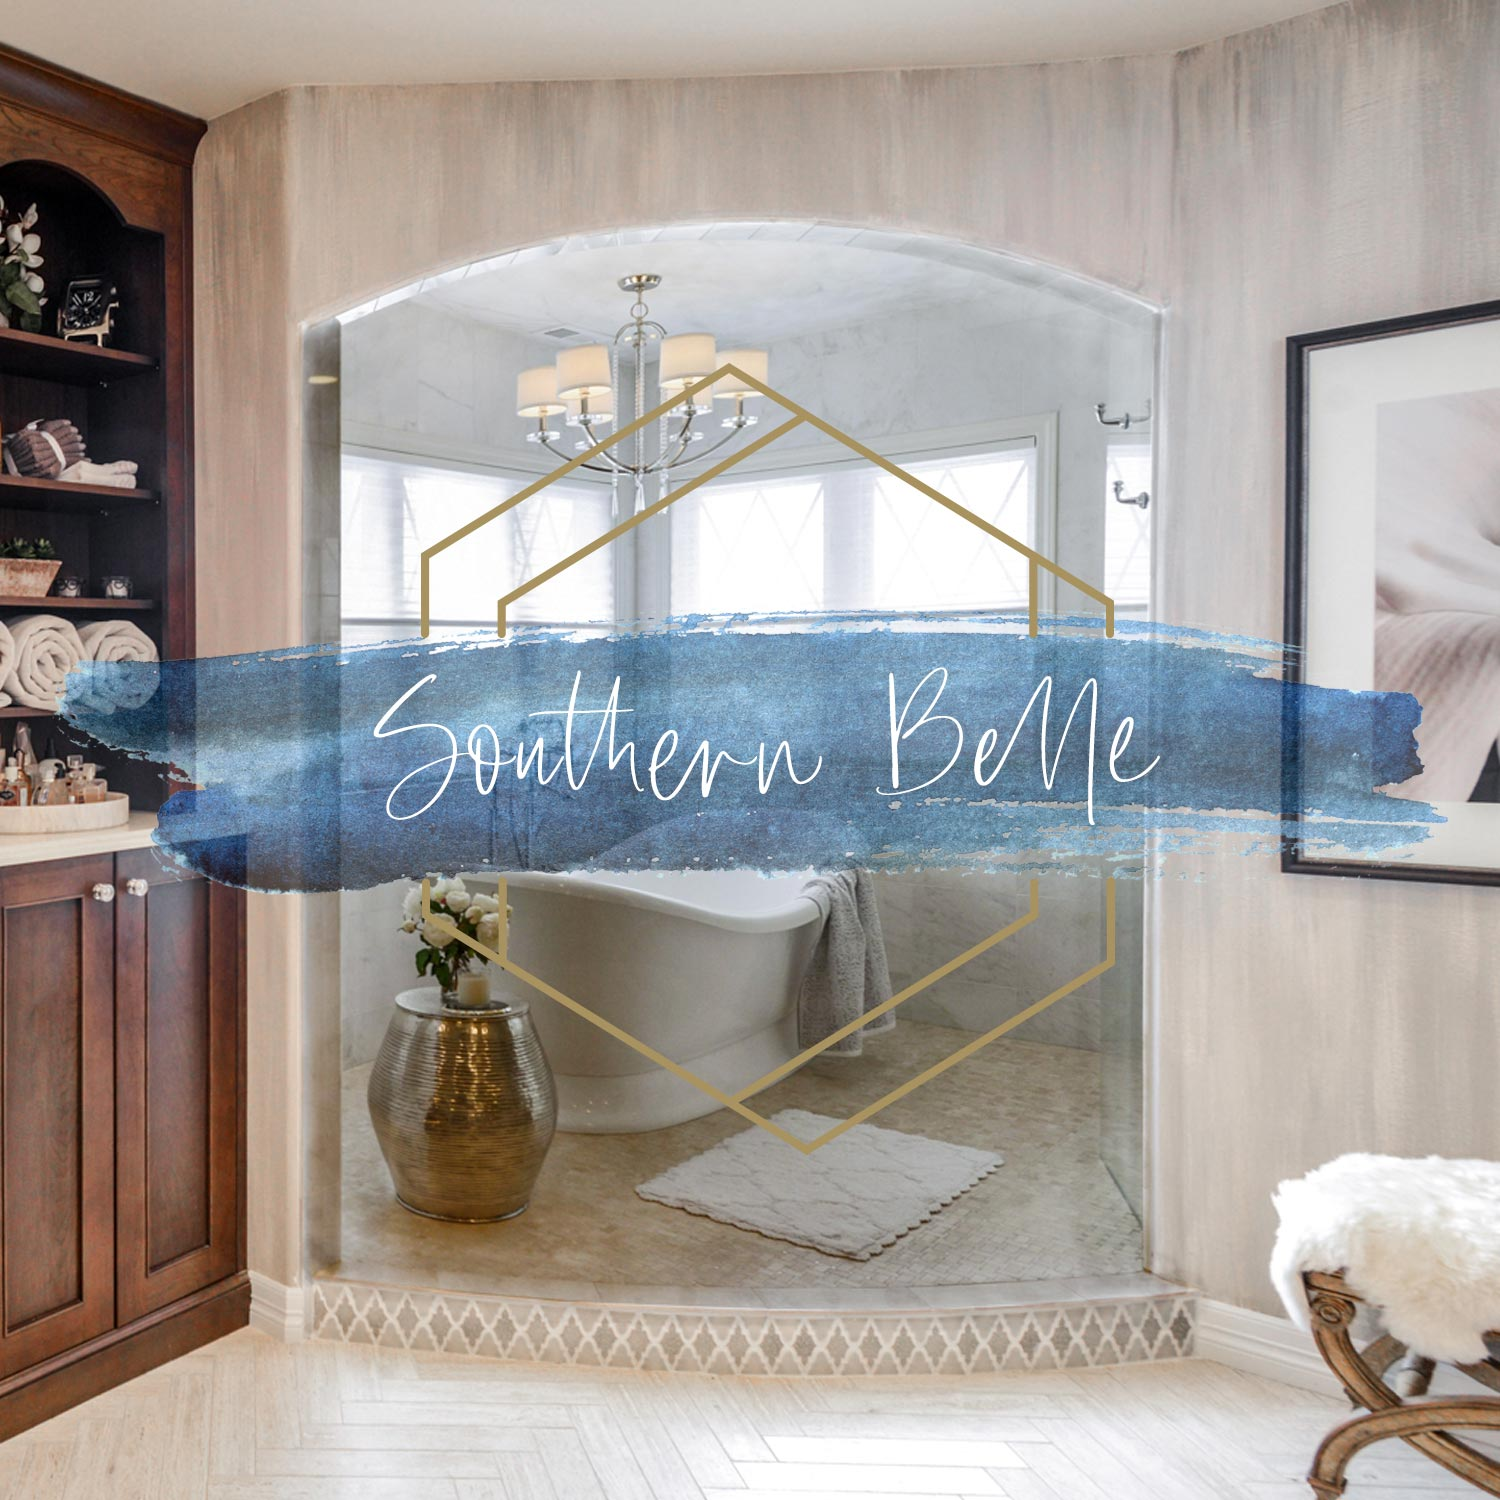 Haven-Interiors-Projects-Southern-Belle.jpg